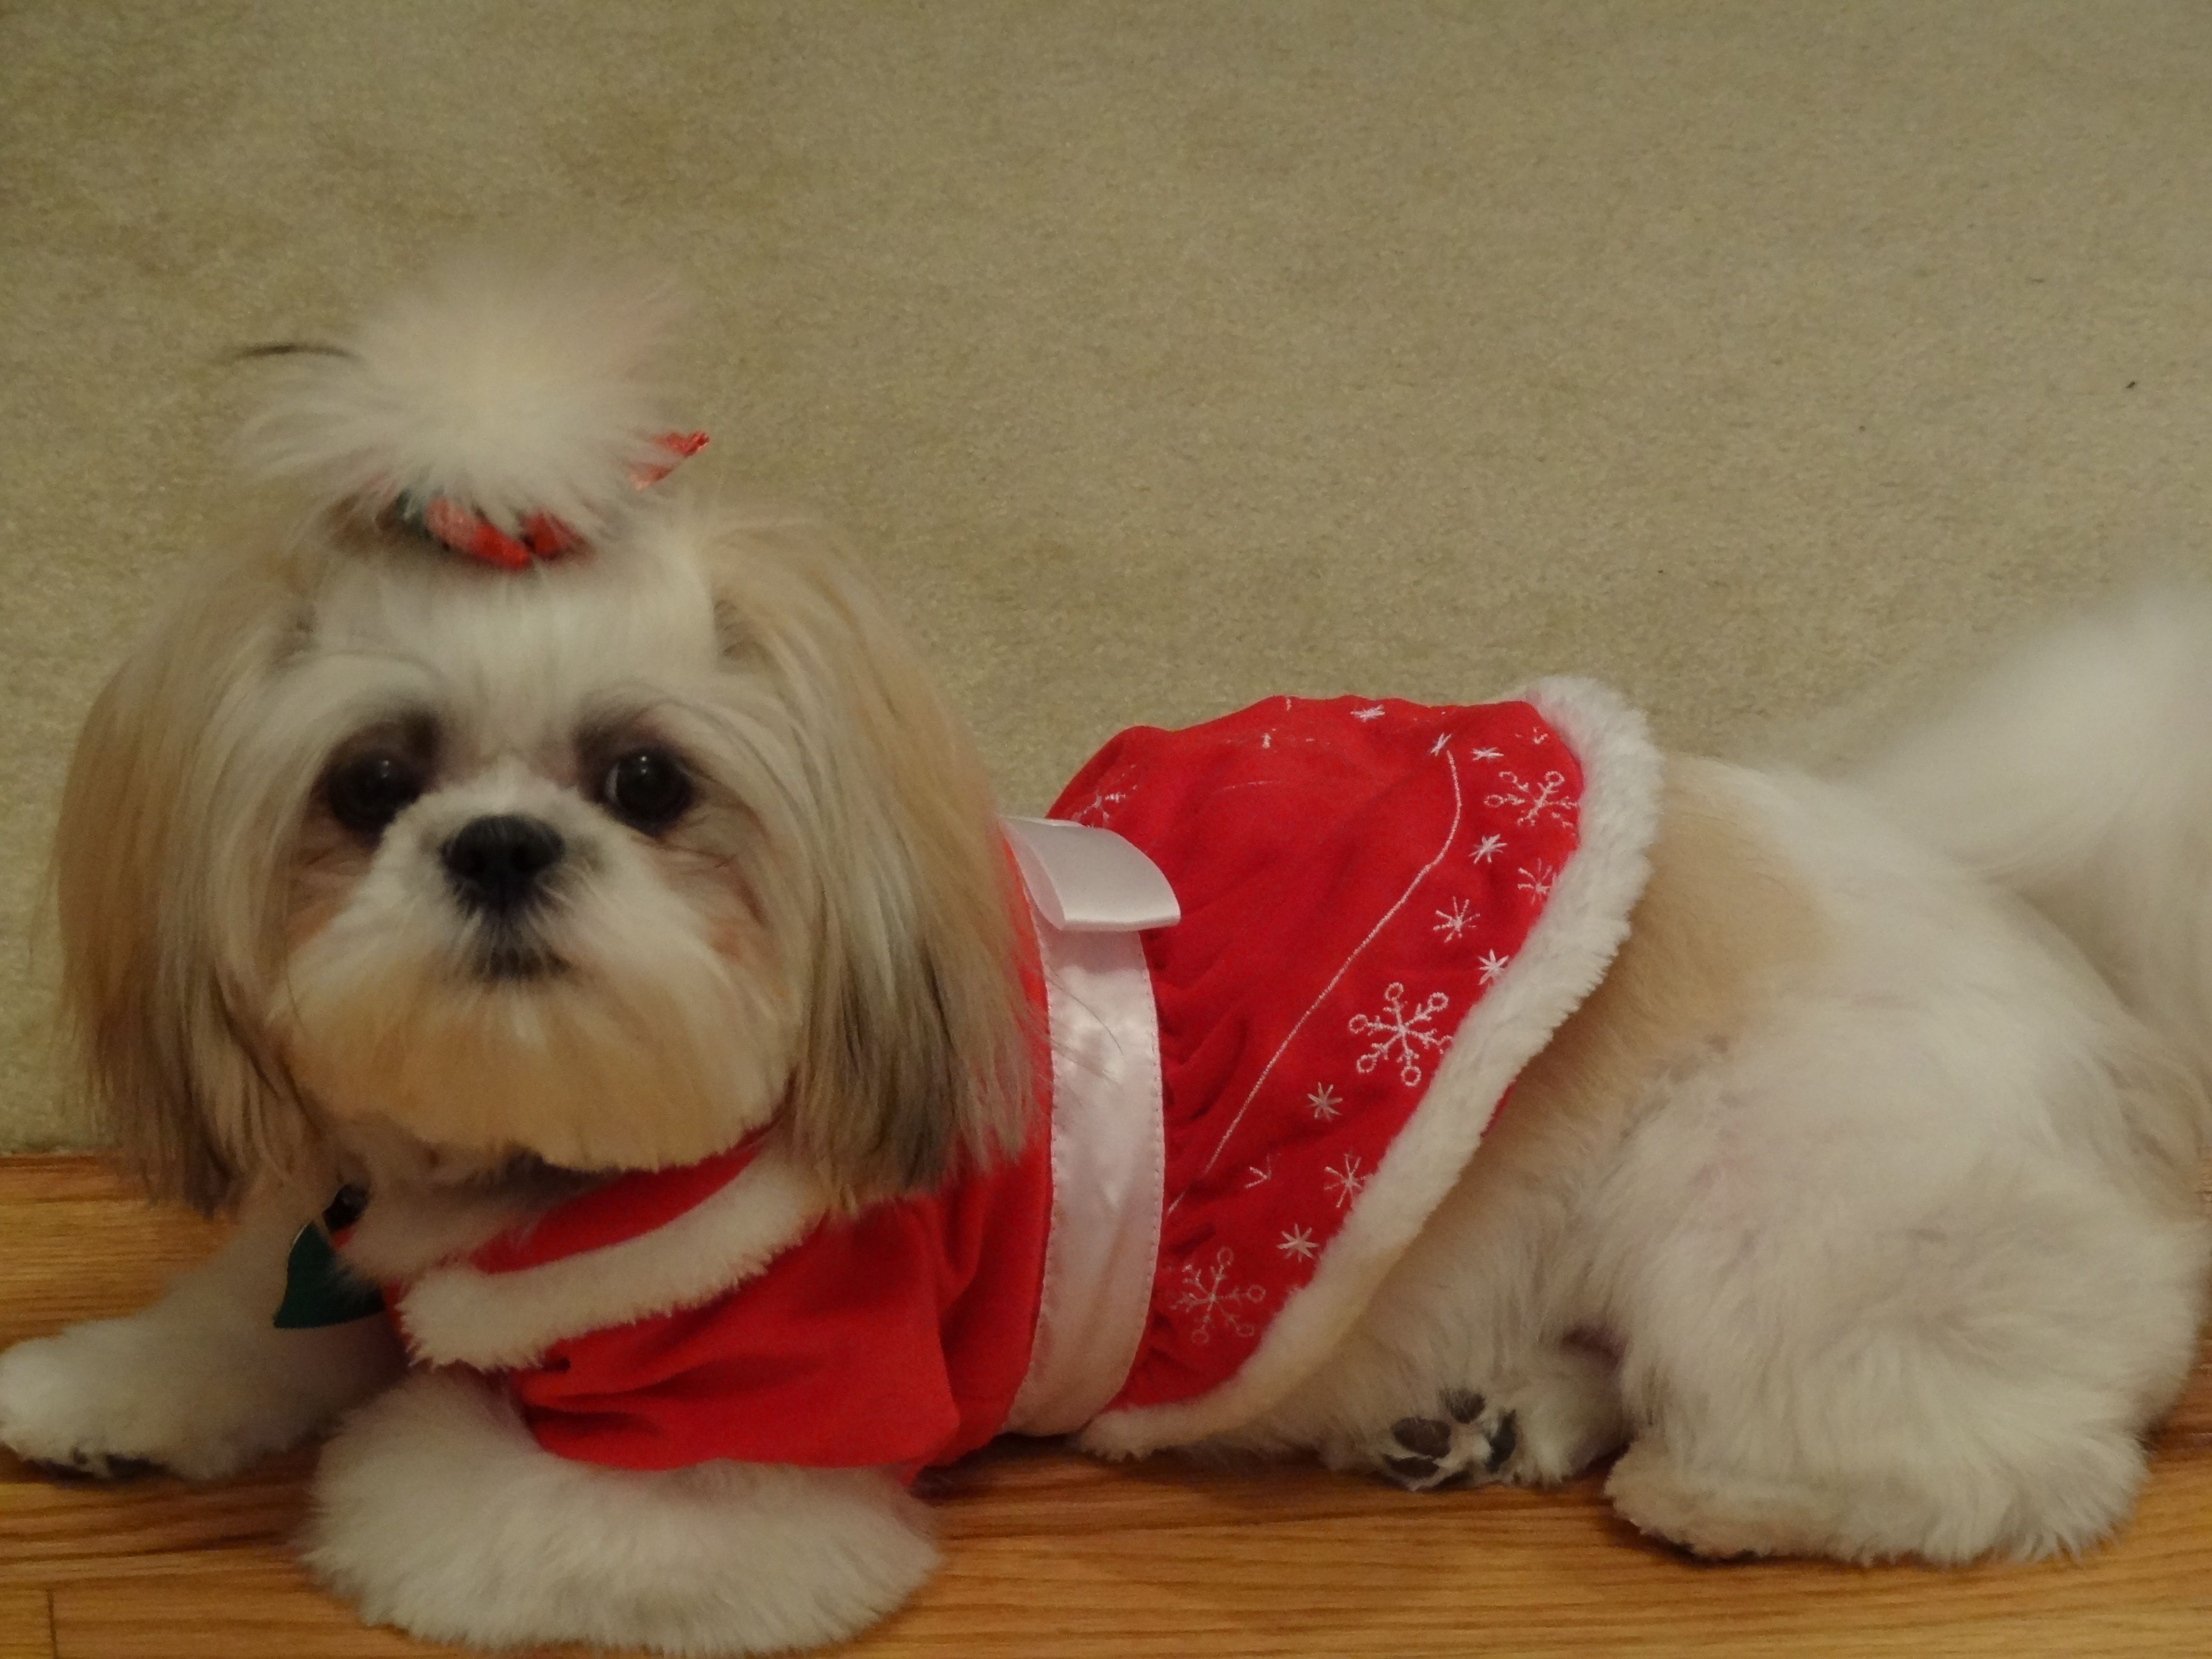 Our Shih Tzu In Her Christmas Outfit Shih Tzu Dog Shih Tzu